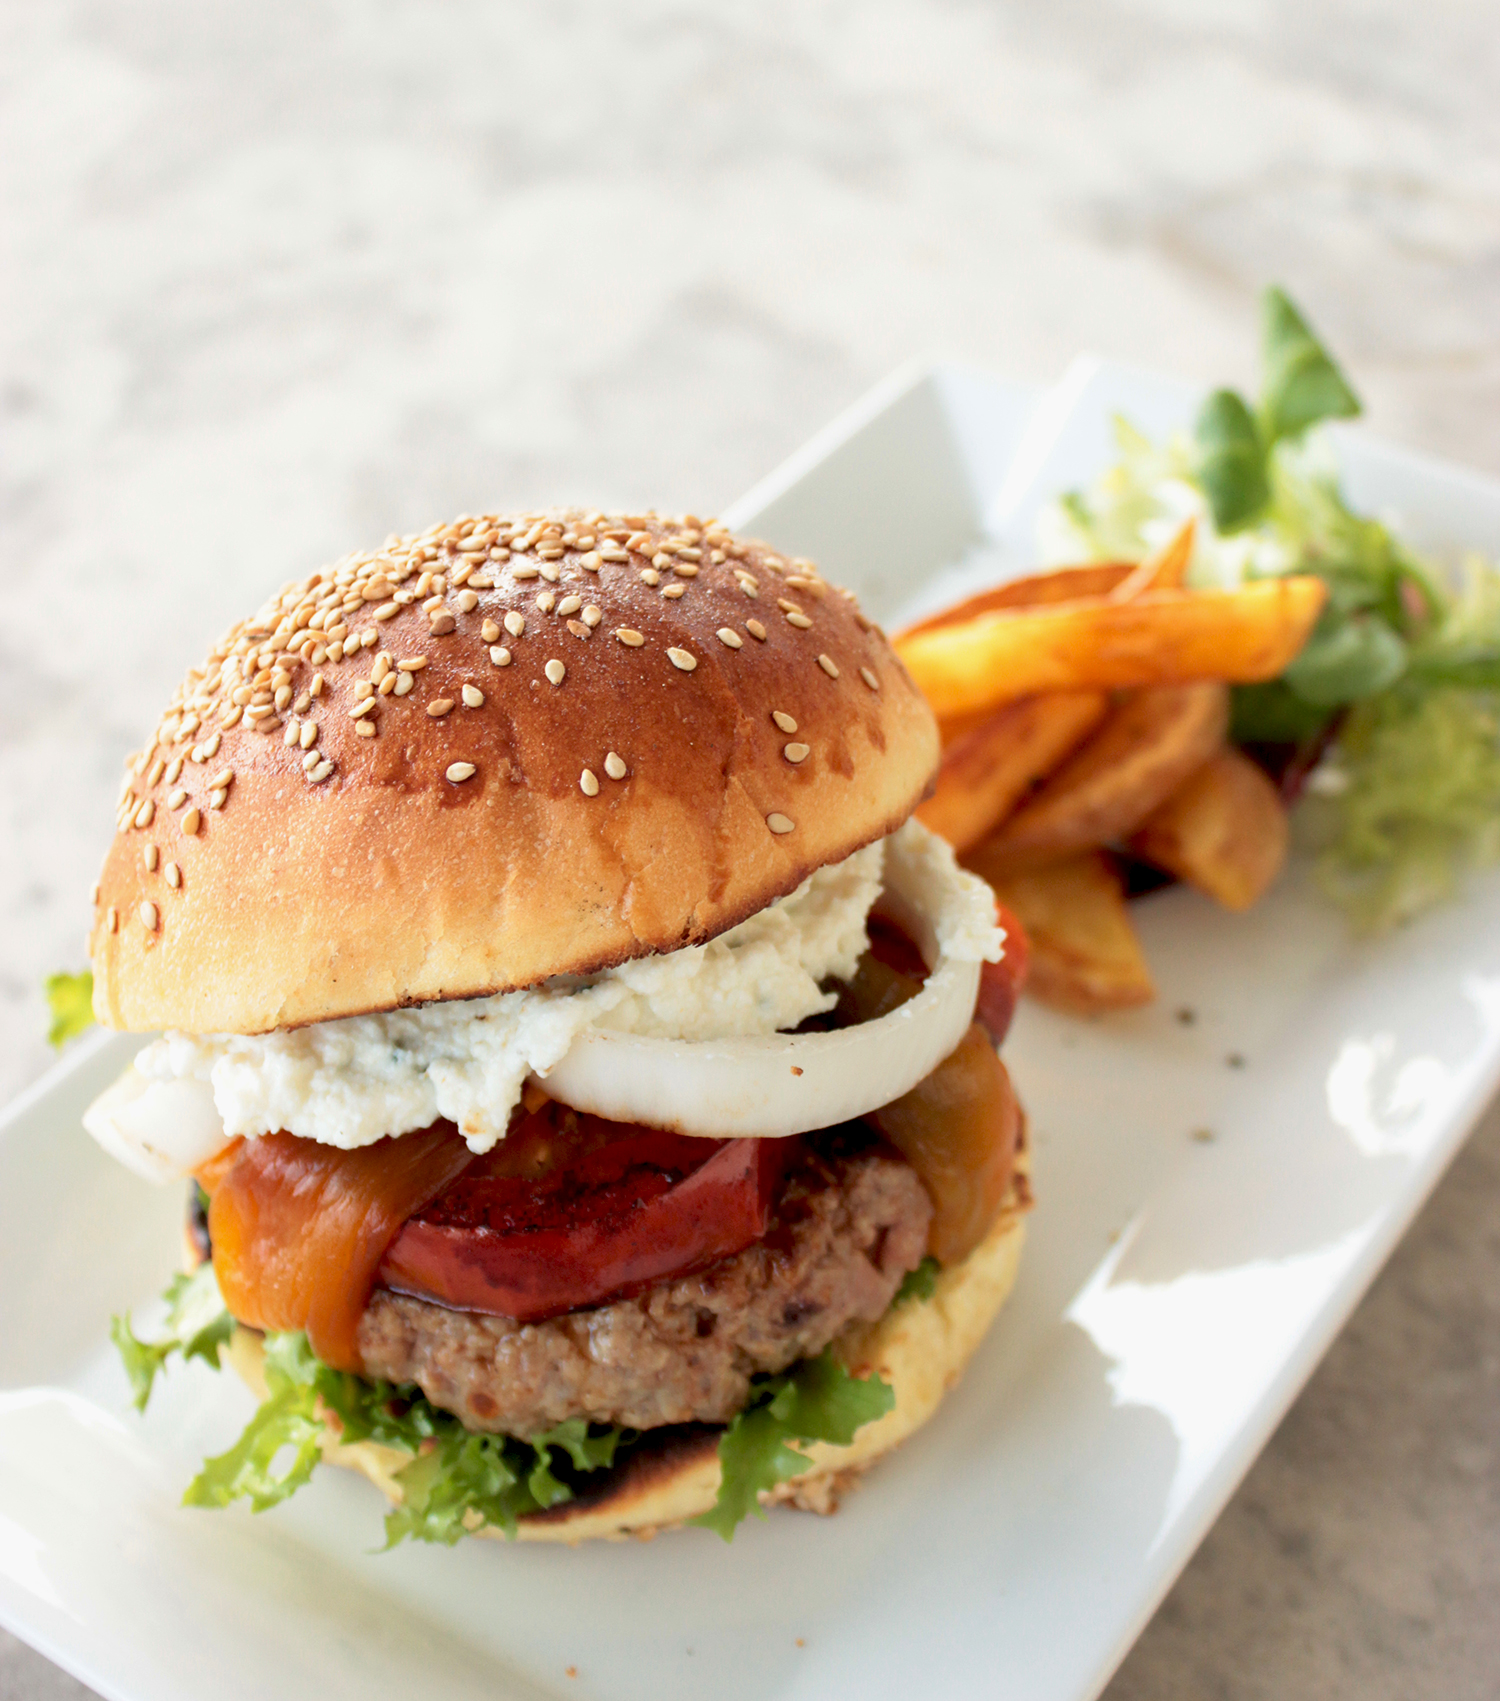 The Petite Cook's Summer Country Burger